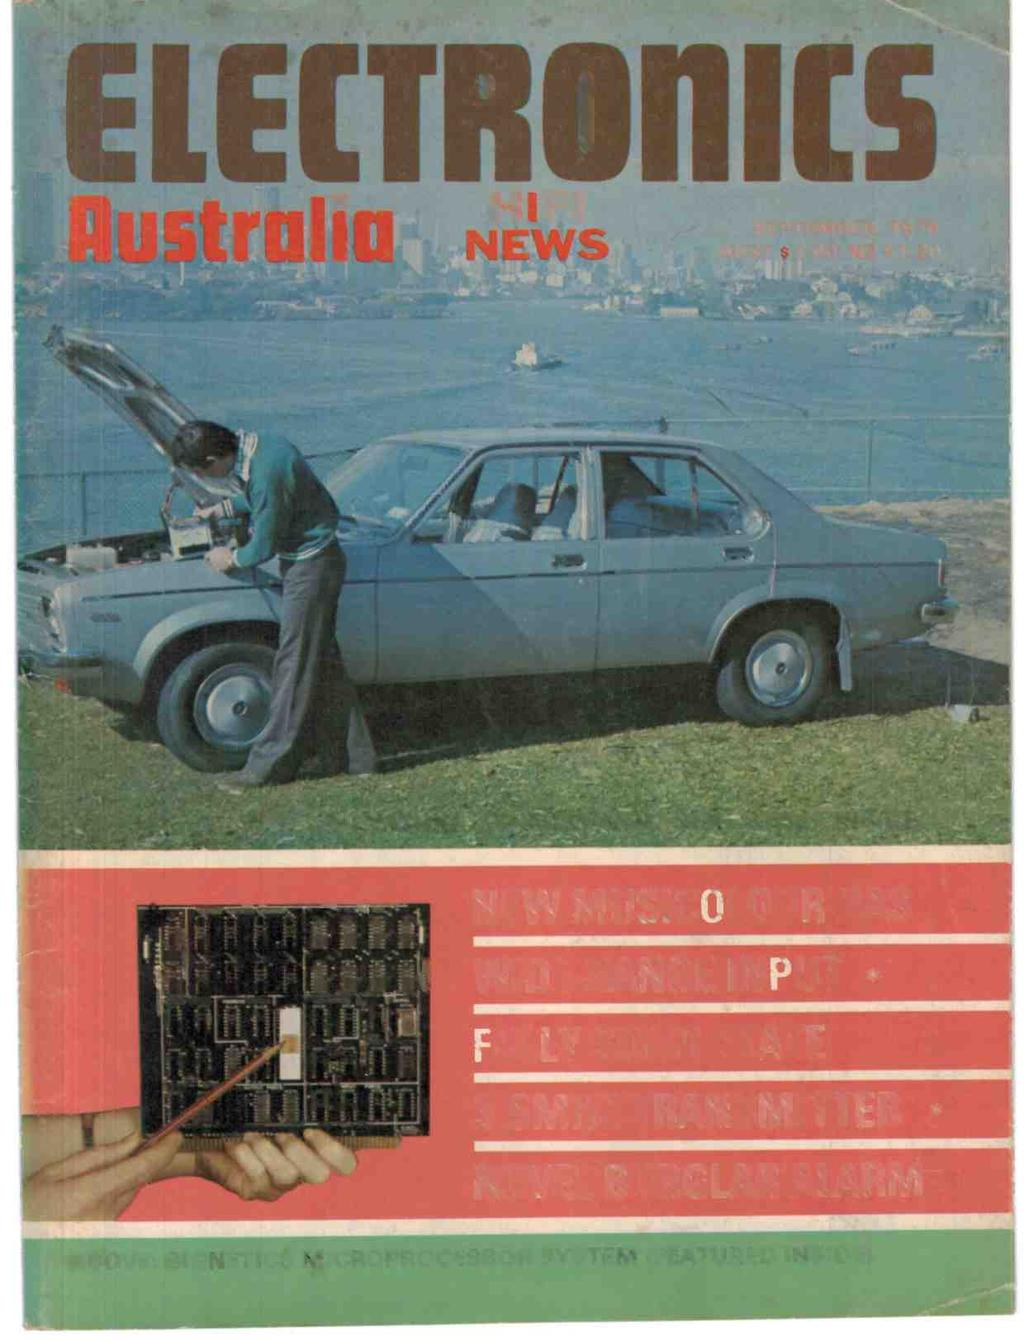 35mhz Transmitter Pdf Infrared Remote Control By Ic 555 Bd137 1 Hifi S September 1976 Aust 103 Nz